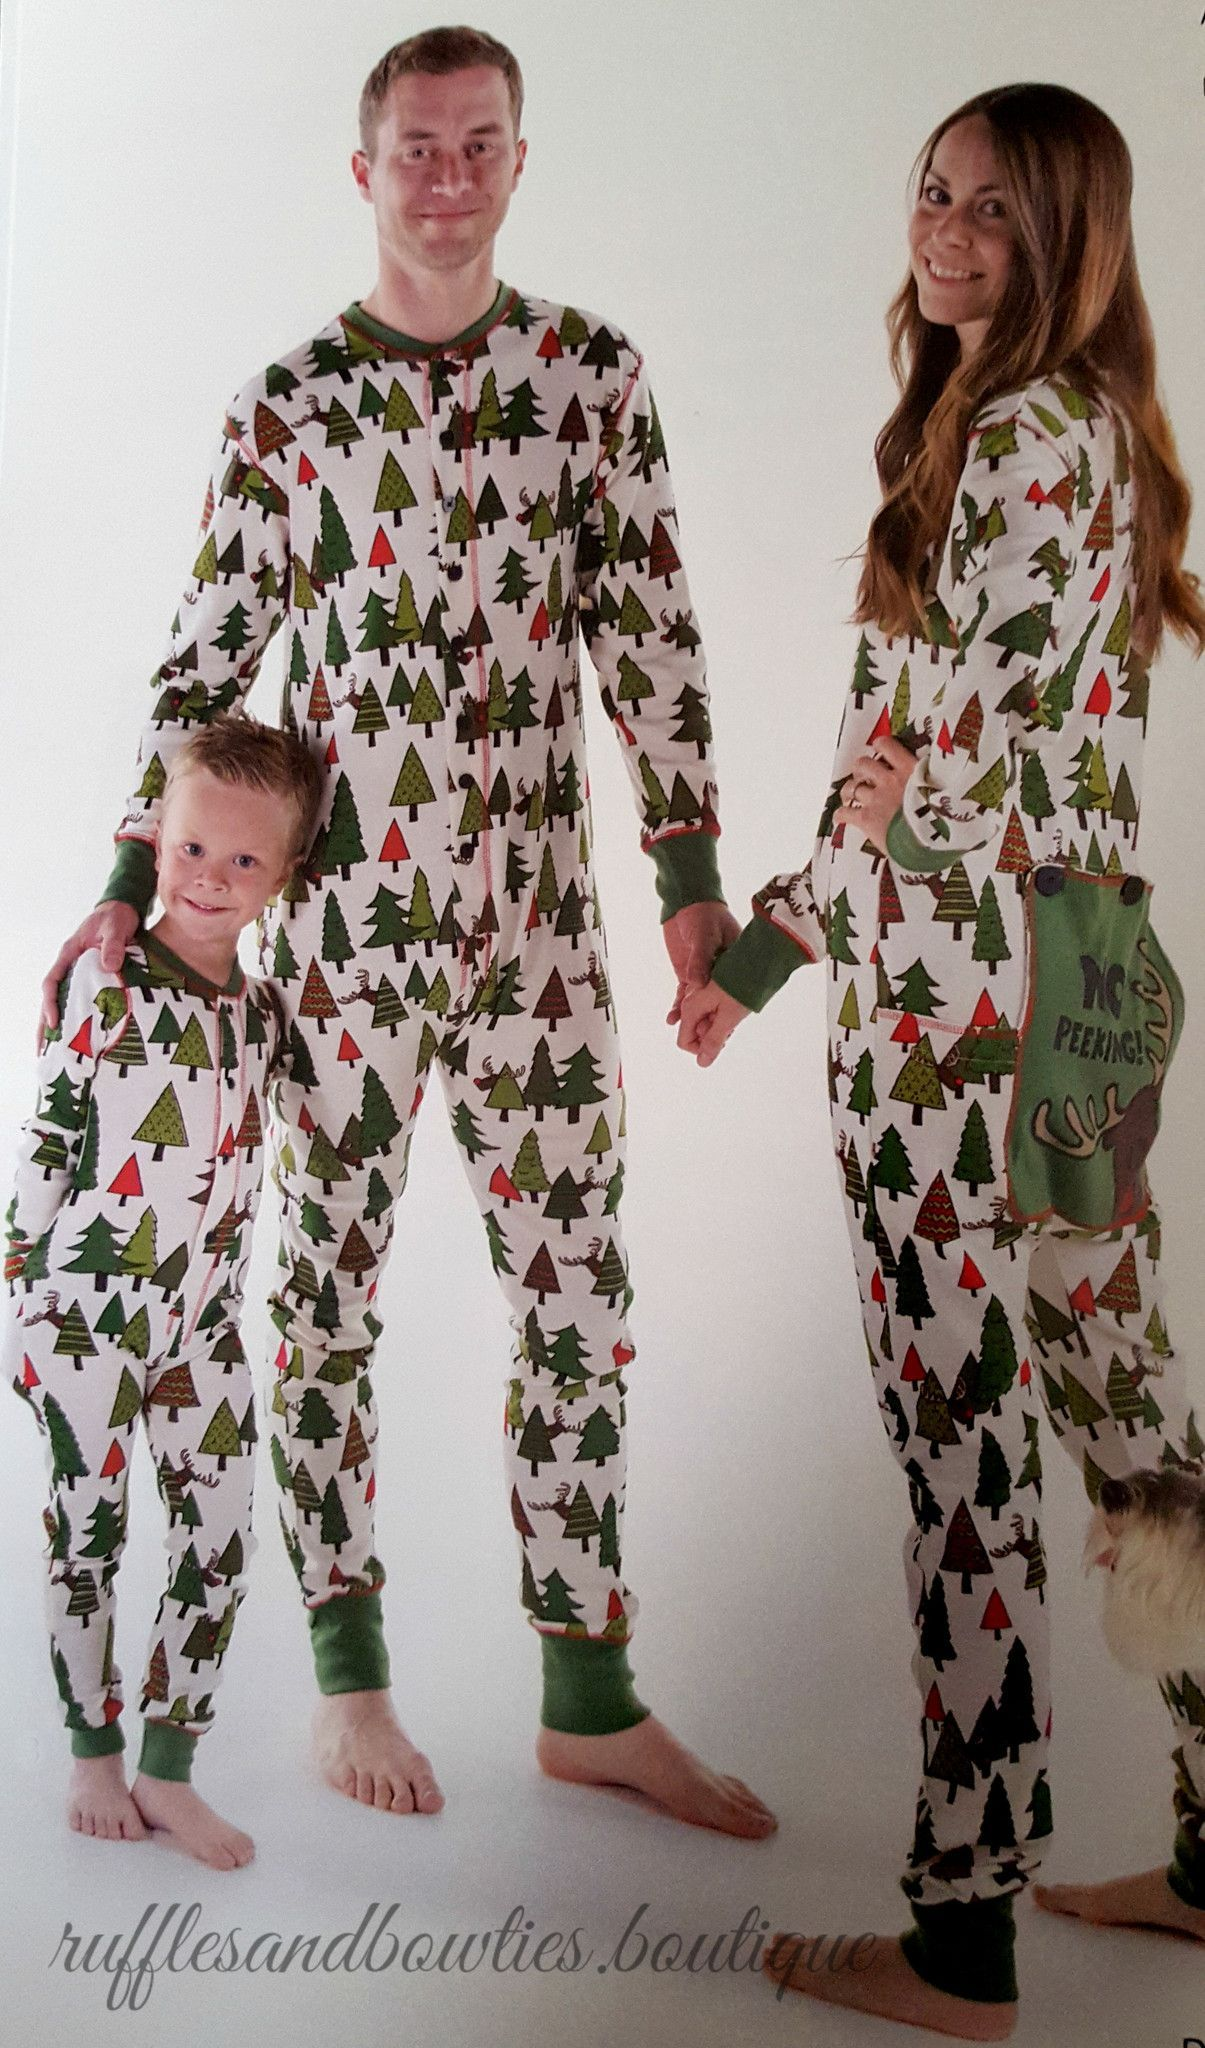 Christmas pajamas for the family is one of the fun family tradition where  families dress up in their matching holiday pajamas every year and take  photos to ... 984cc39fa